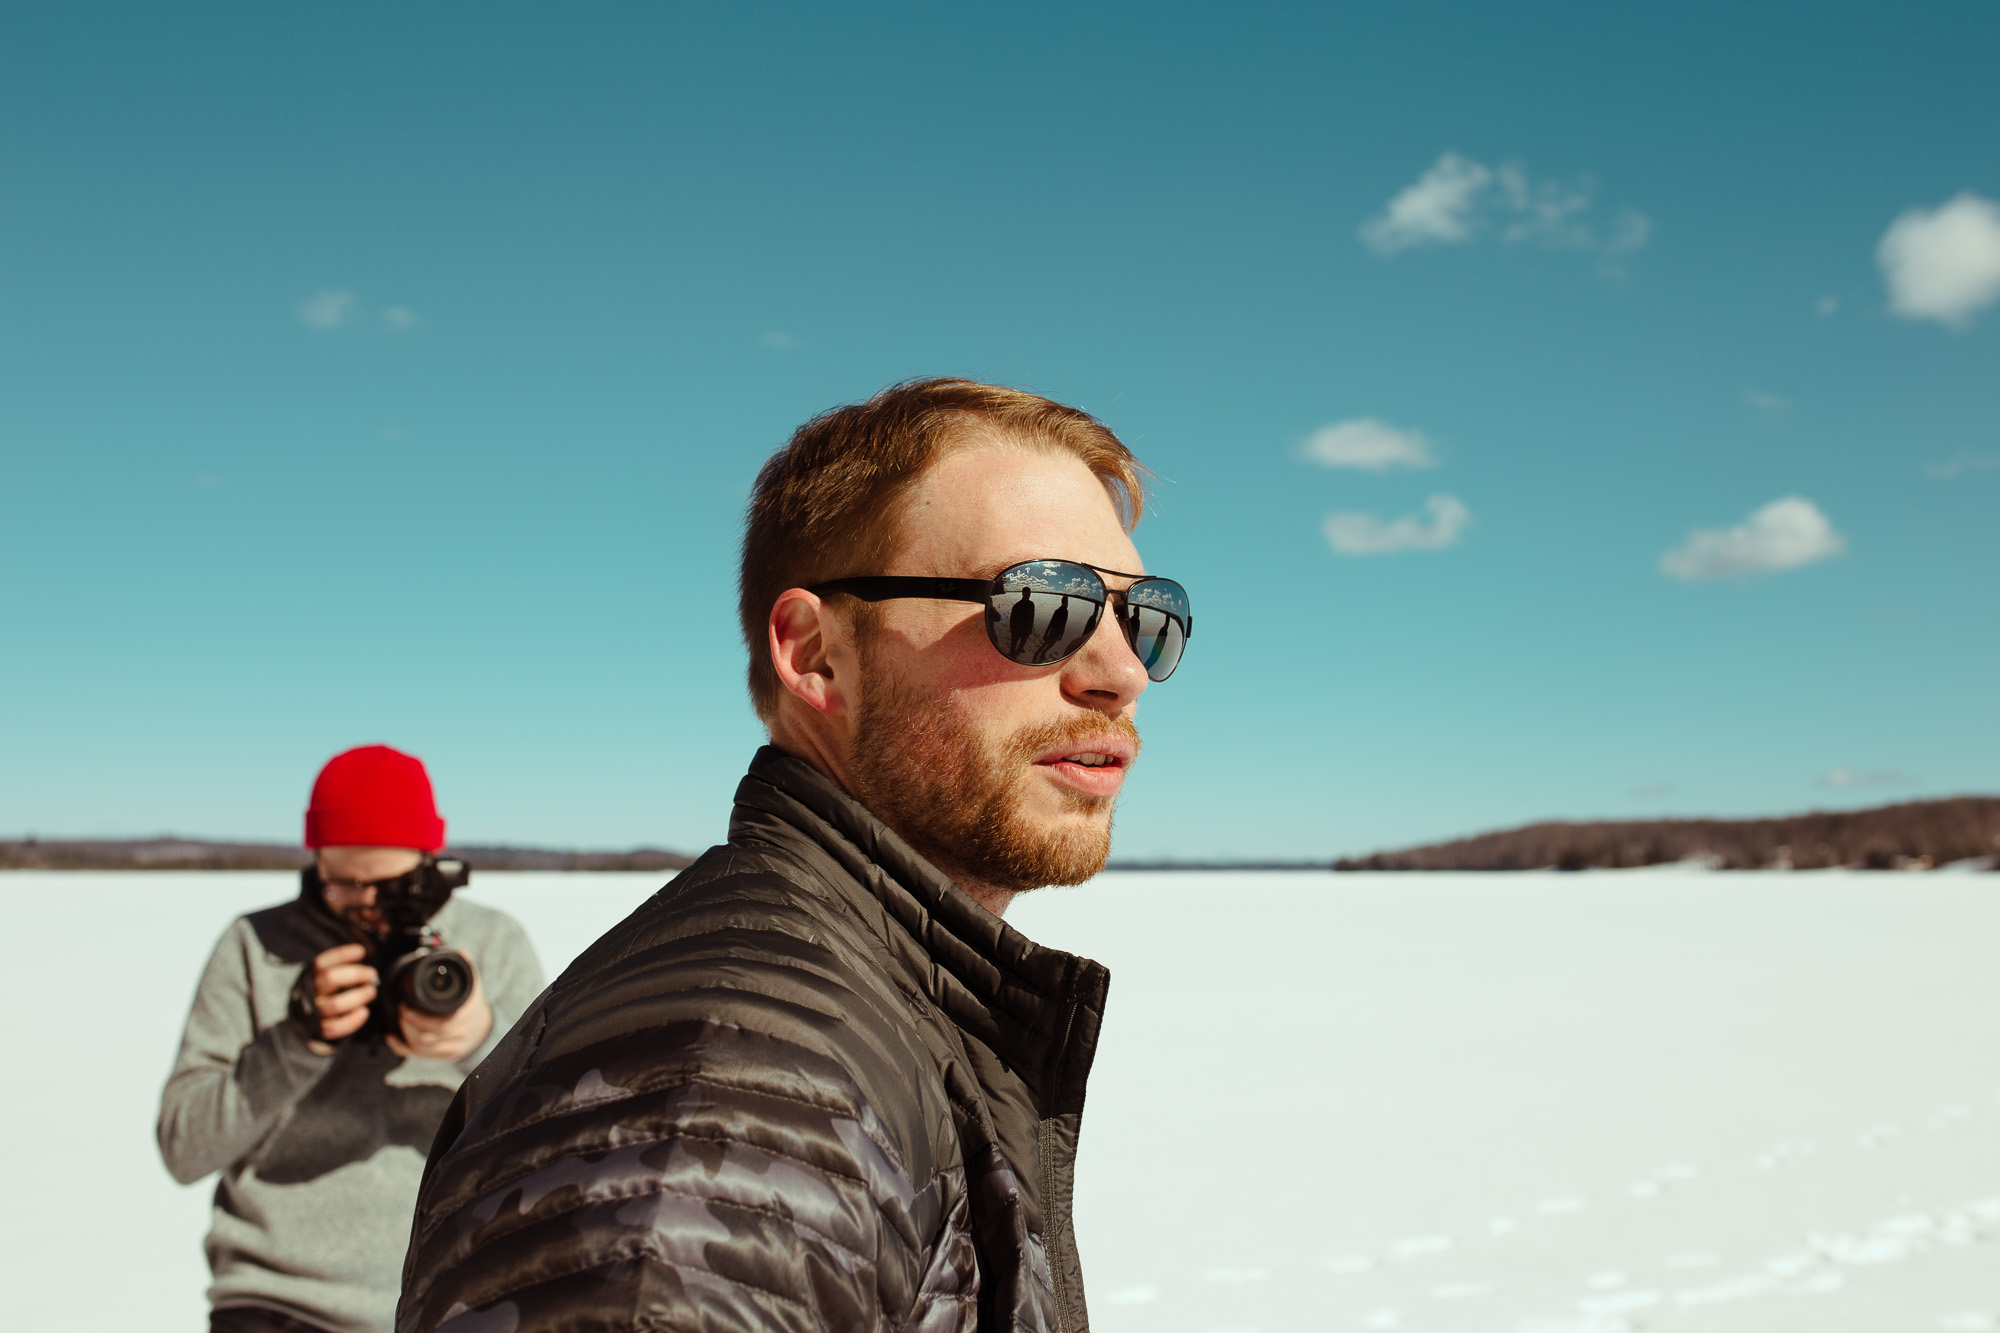 Man taking photo of another man in sunglasses